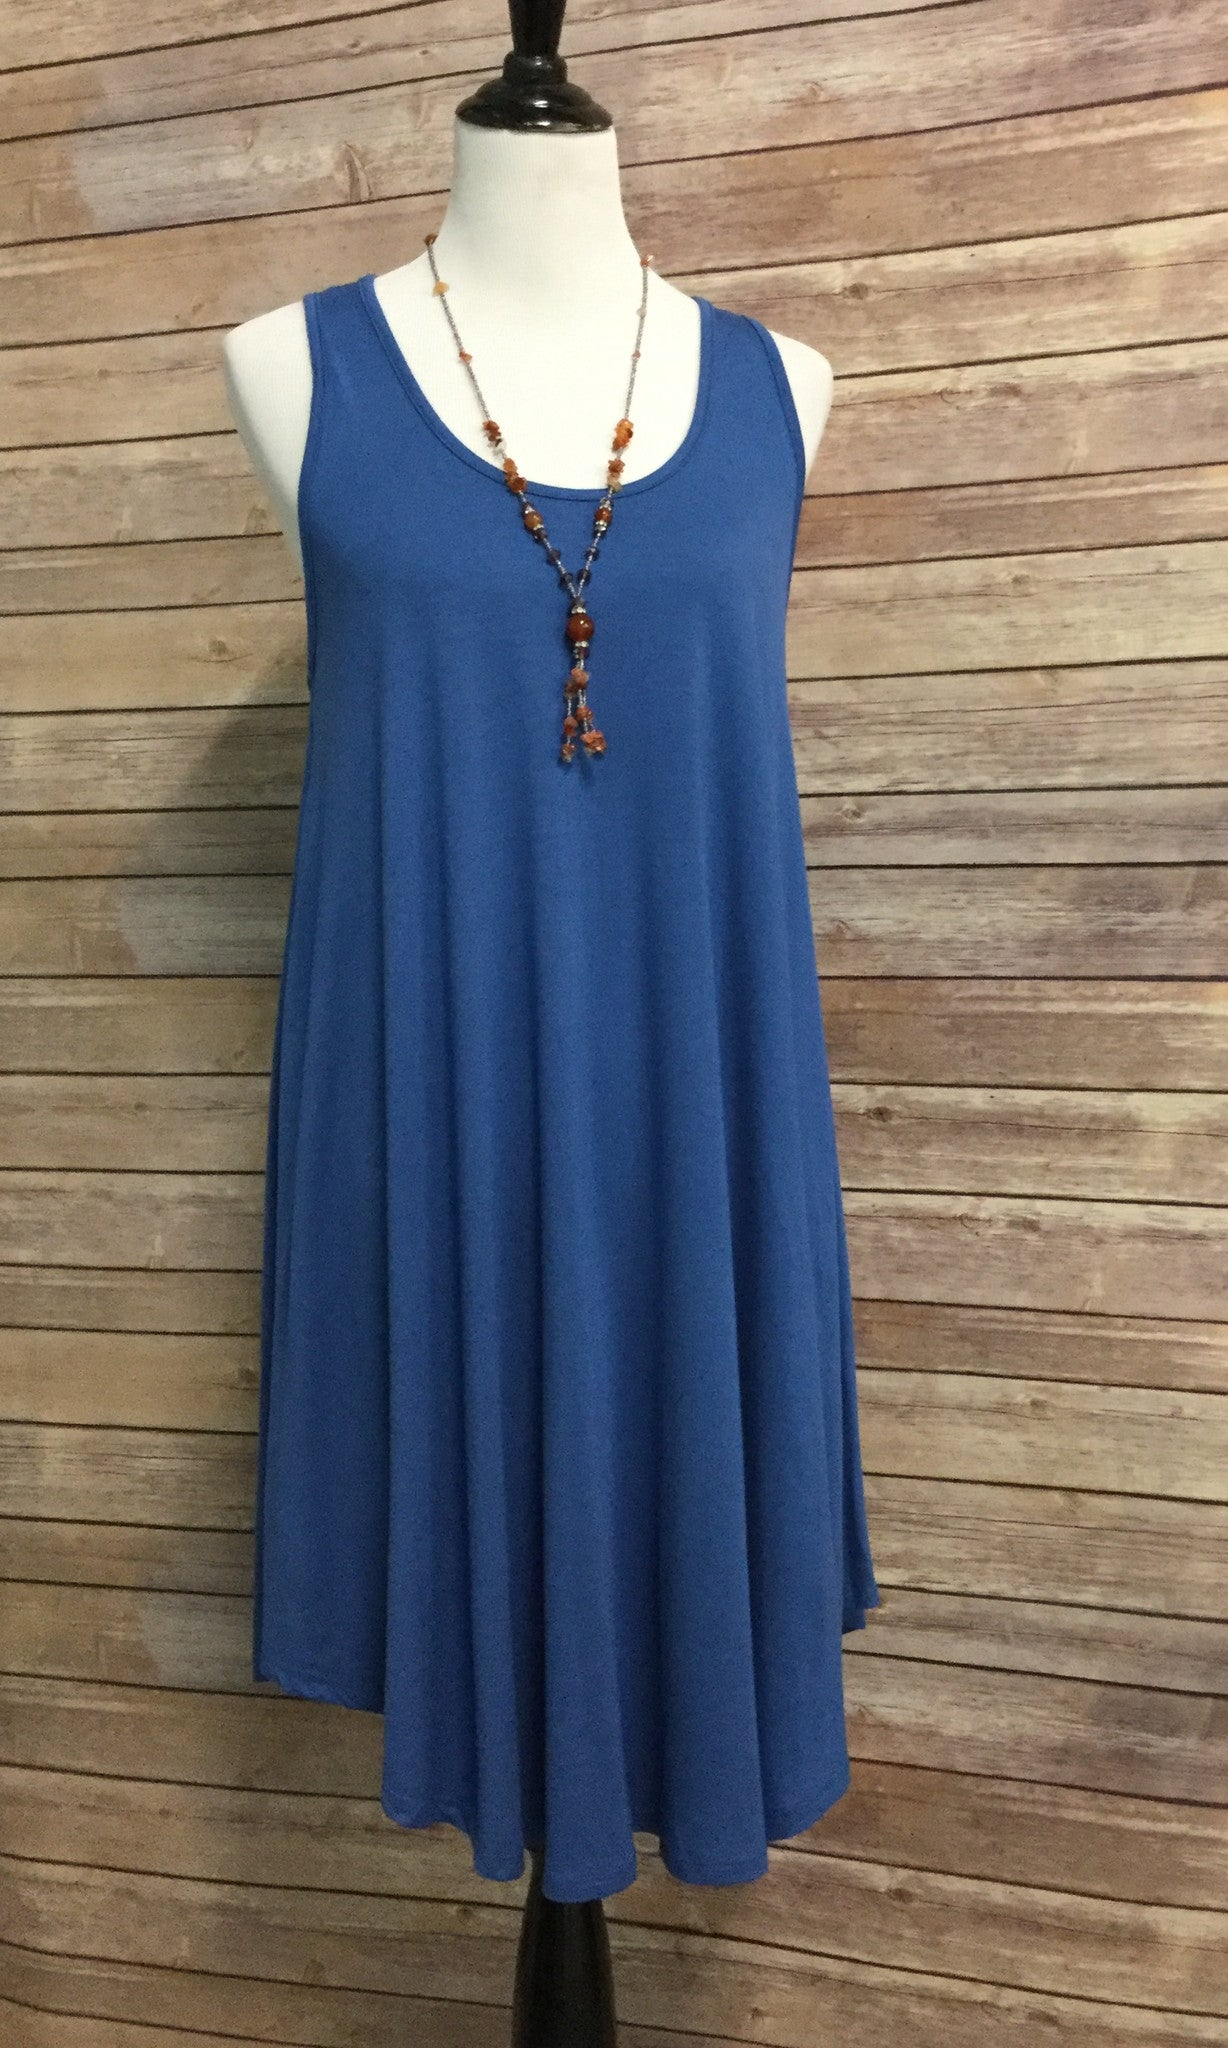 Easy Breezy Sleeveless Dress - SALE